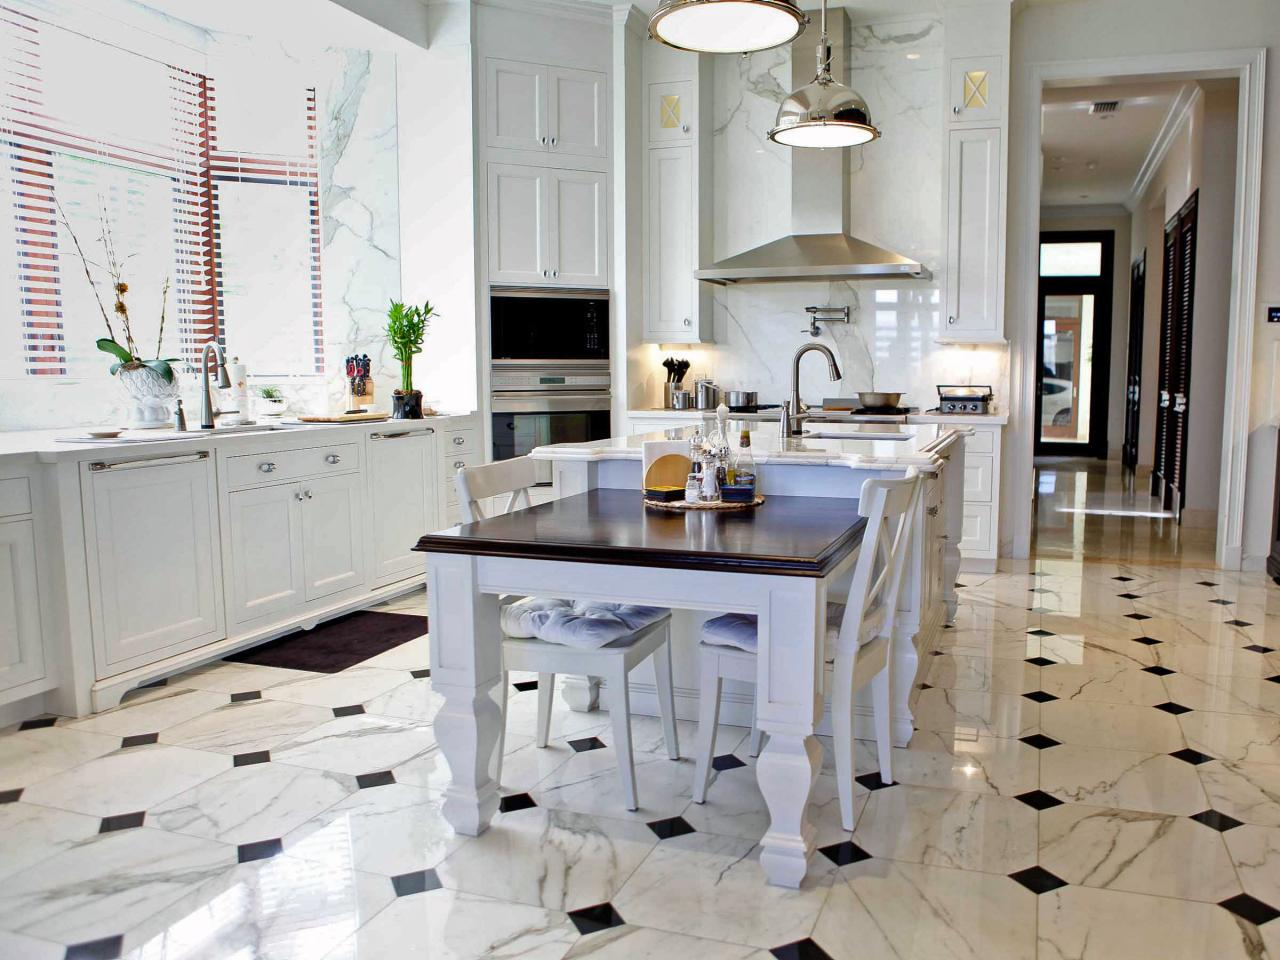 black and white floor tile kitchen. Related To  Floors Marble Stone Maintenance Elegant Transitional Kitchen with Black and White Flooring What You Should Know About DIY